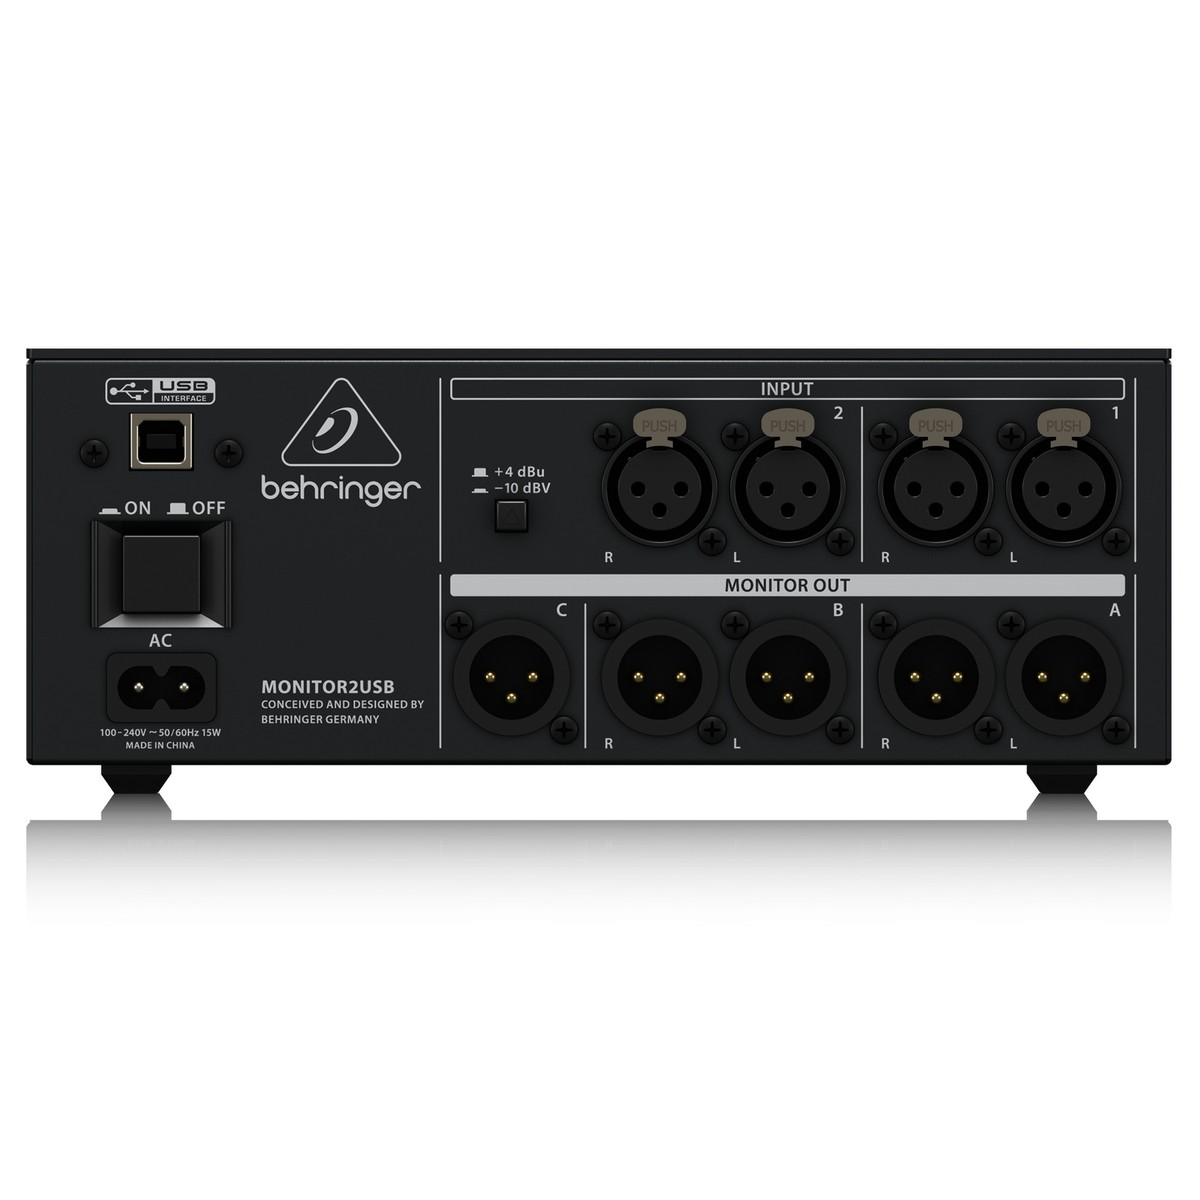 Behringer Monitor2usb Headphone Speaker Controller At Gear4music Circuits Monitor Amp 2 Usb Loading Zoom